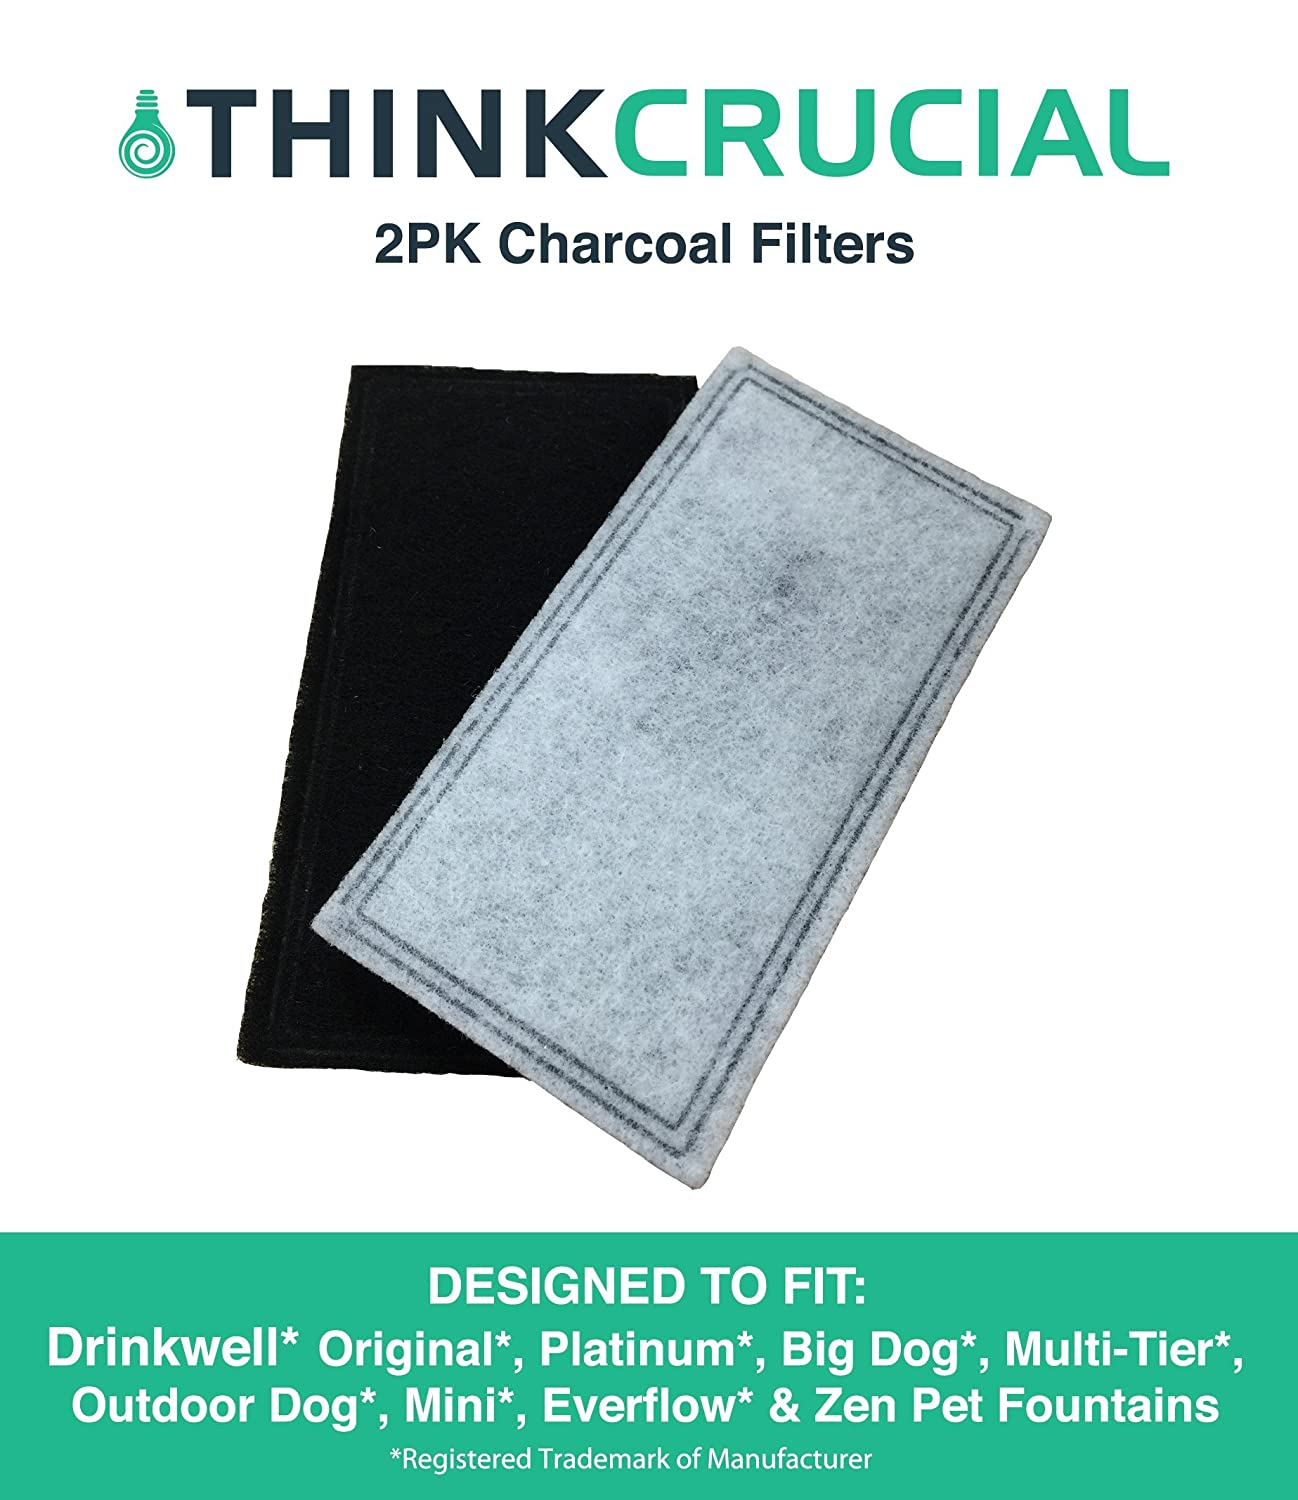 2 Replacements for Drinkwell Two-Chamber Charcoal Filters, Fits Big Dog, Everflow, Mini, Multi-Tier, Original, Outdoor Dog, Platinum, & Zen Fountains, by Think Crucial